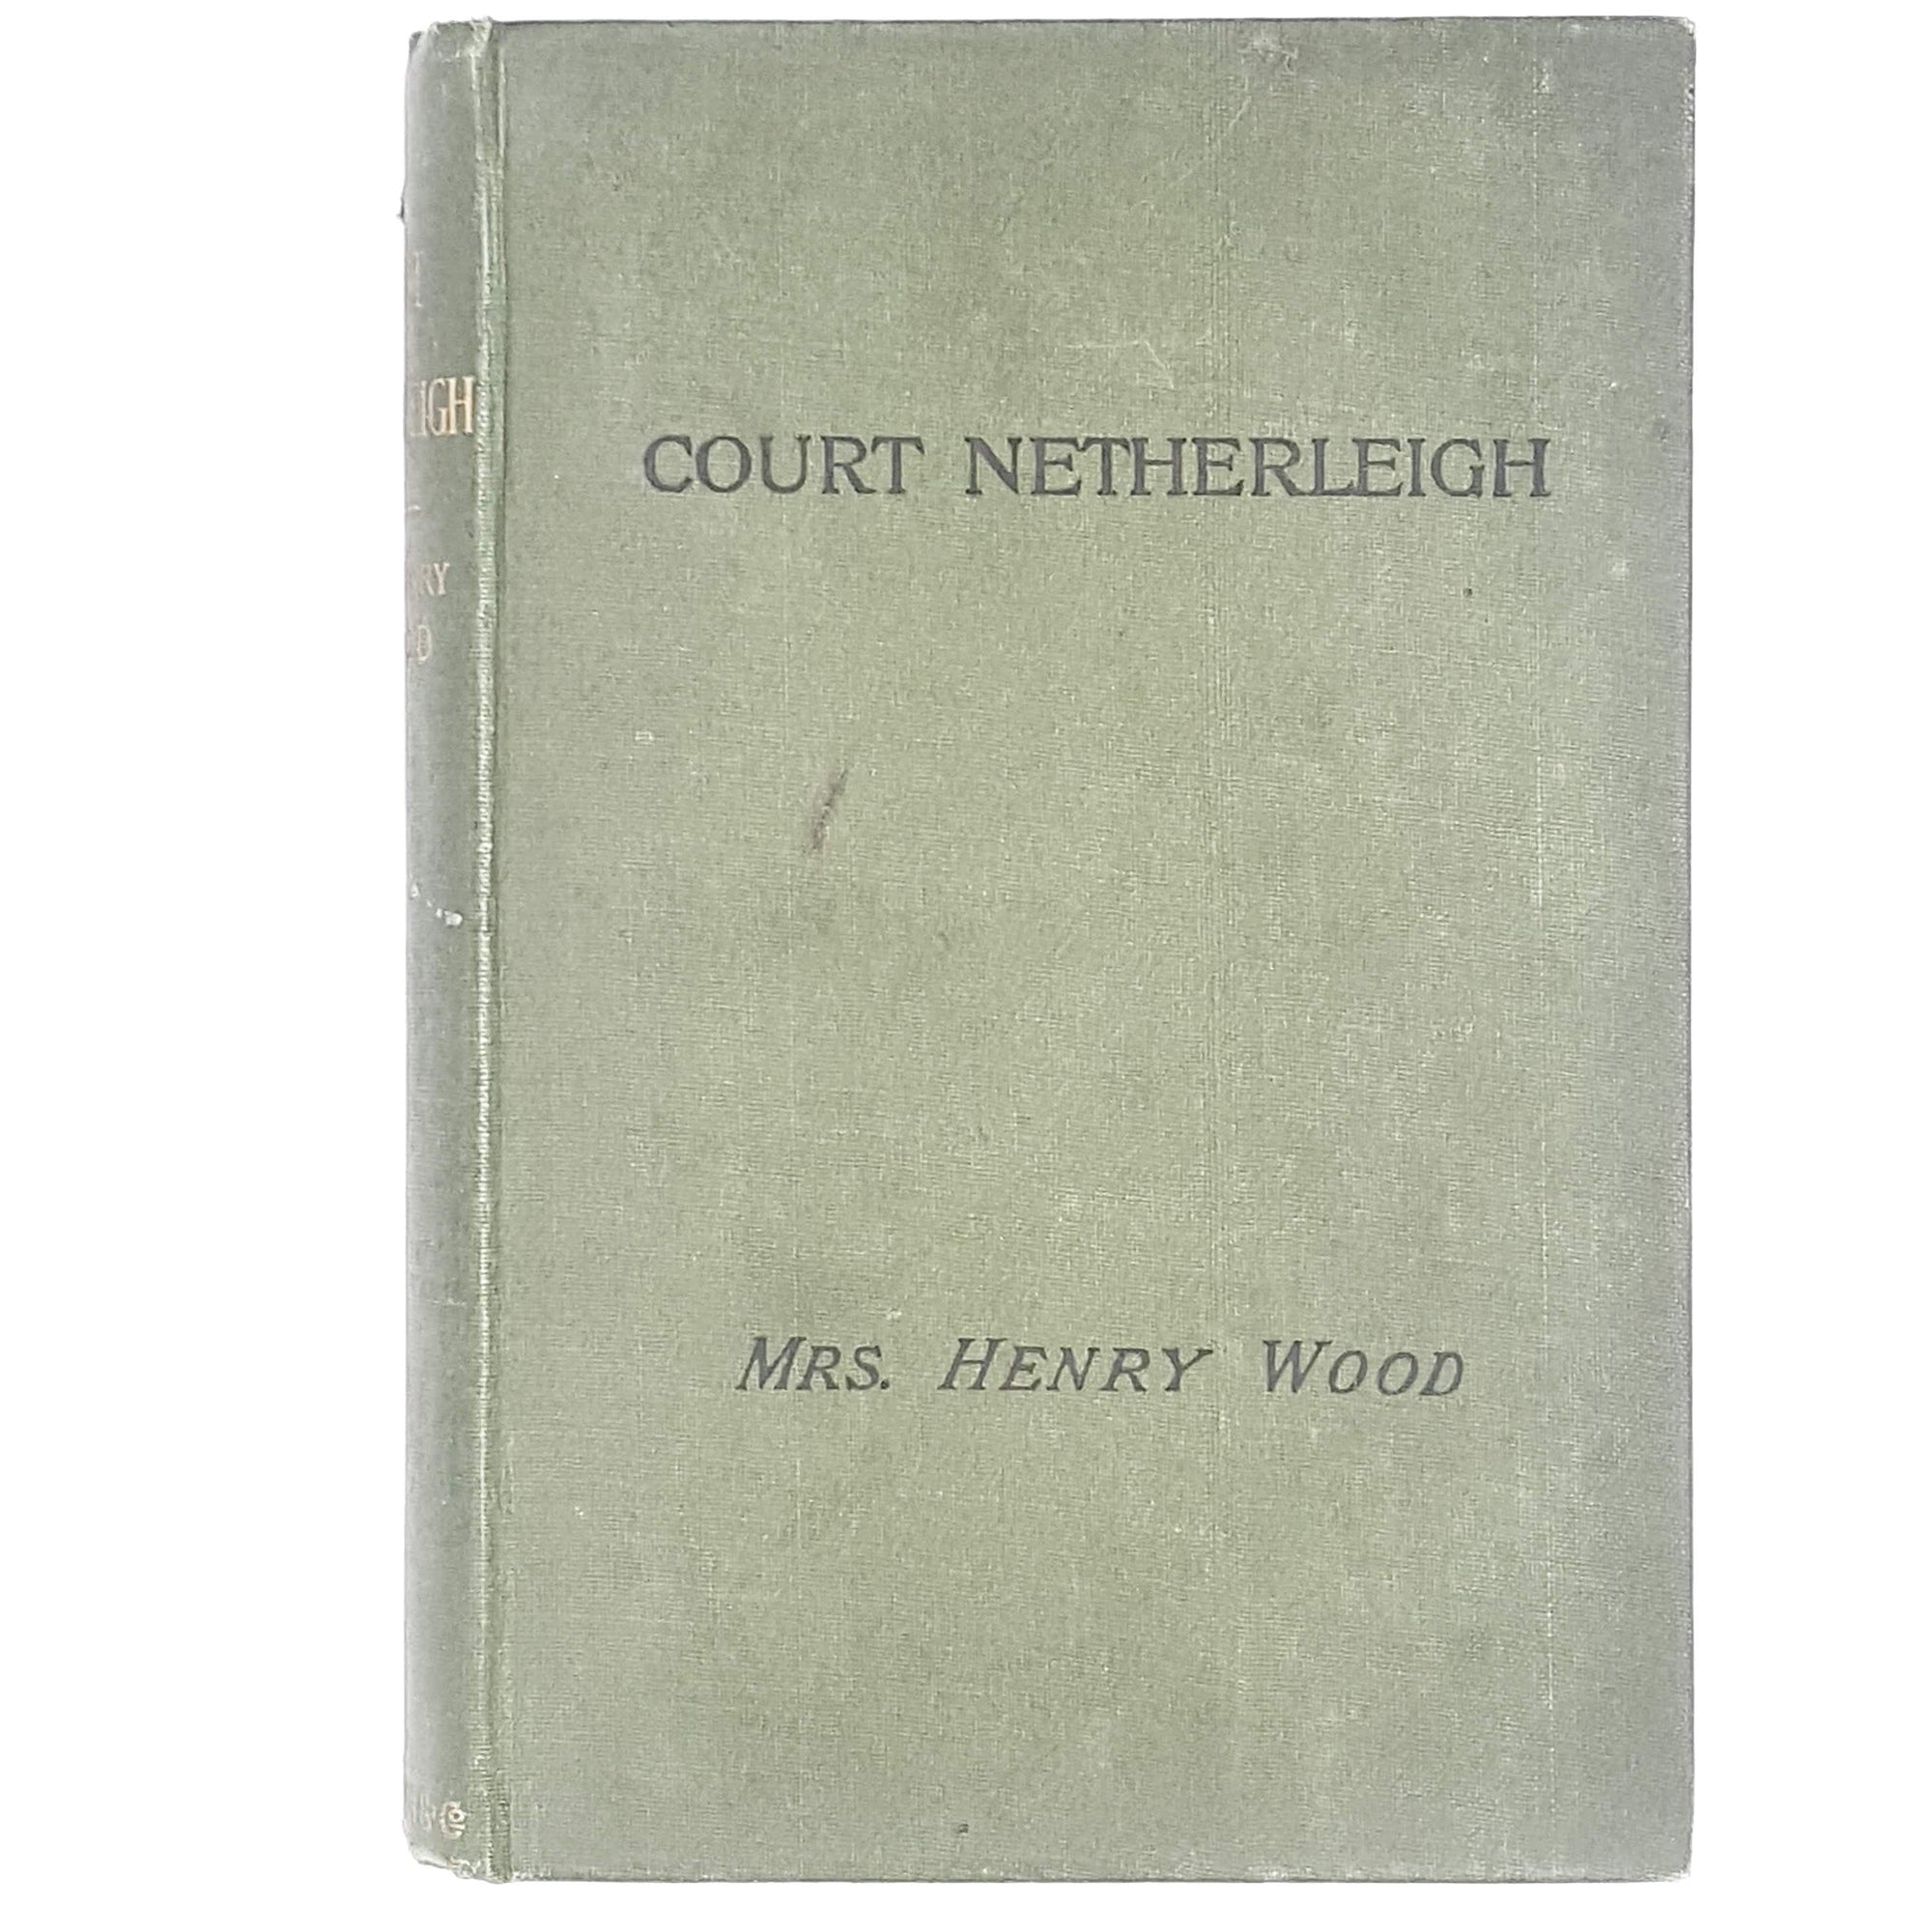 Court Netherleigh by Mrs. Henry Wood 1903